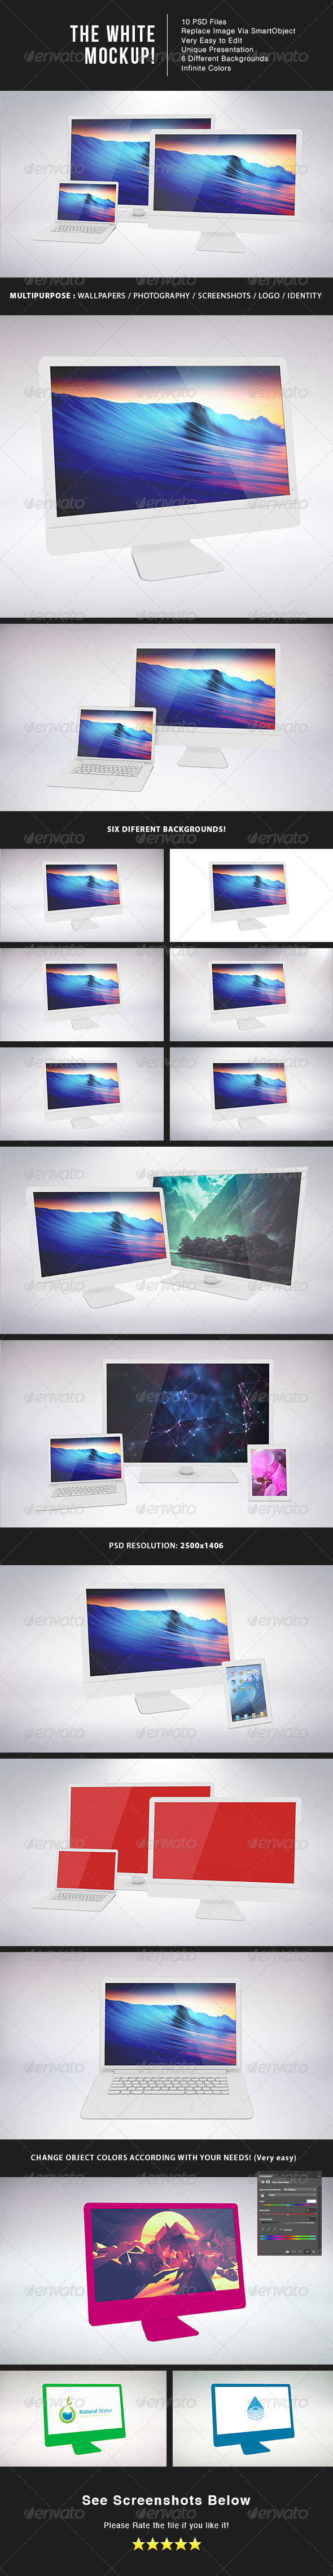 The White MockUp - Displays Product Mock-Ups